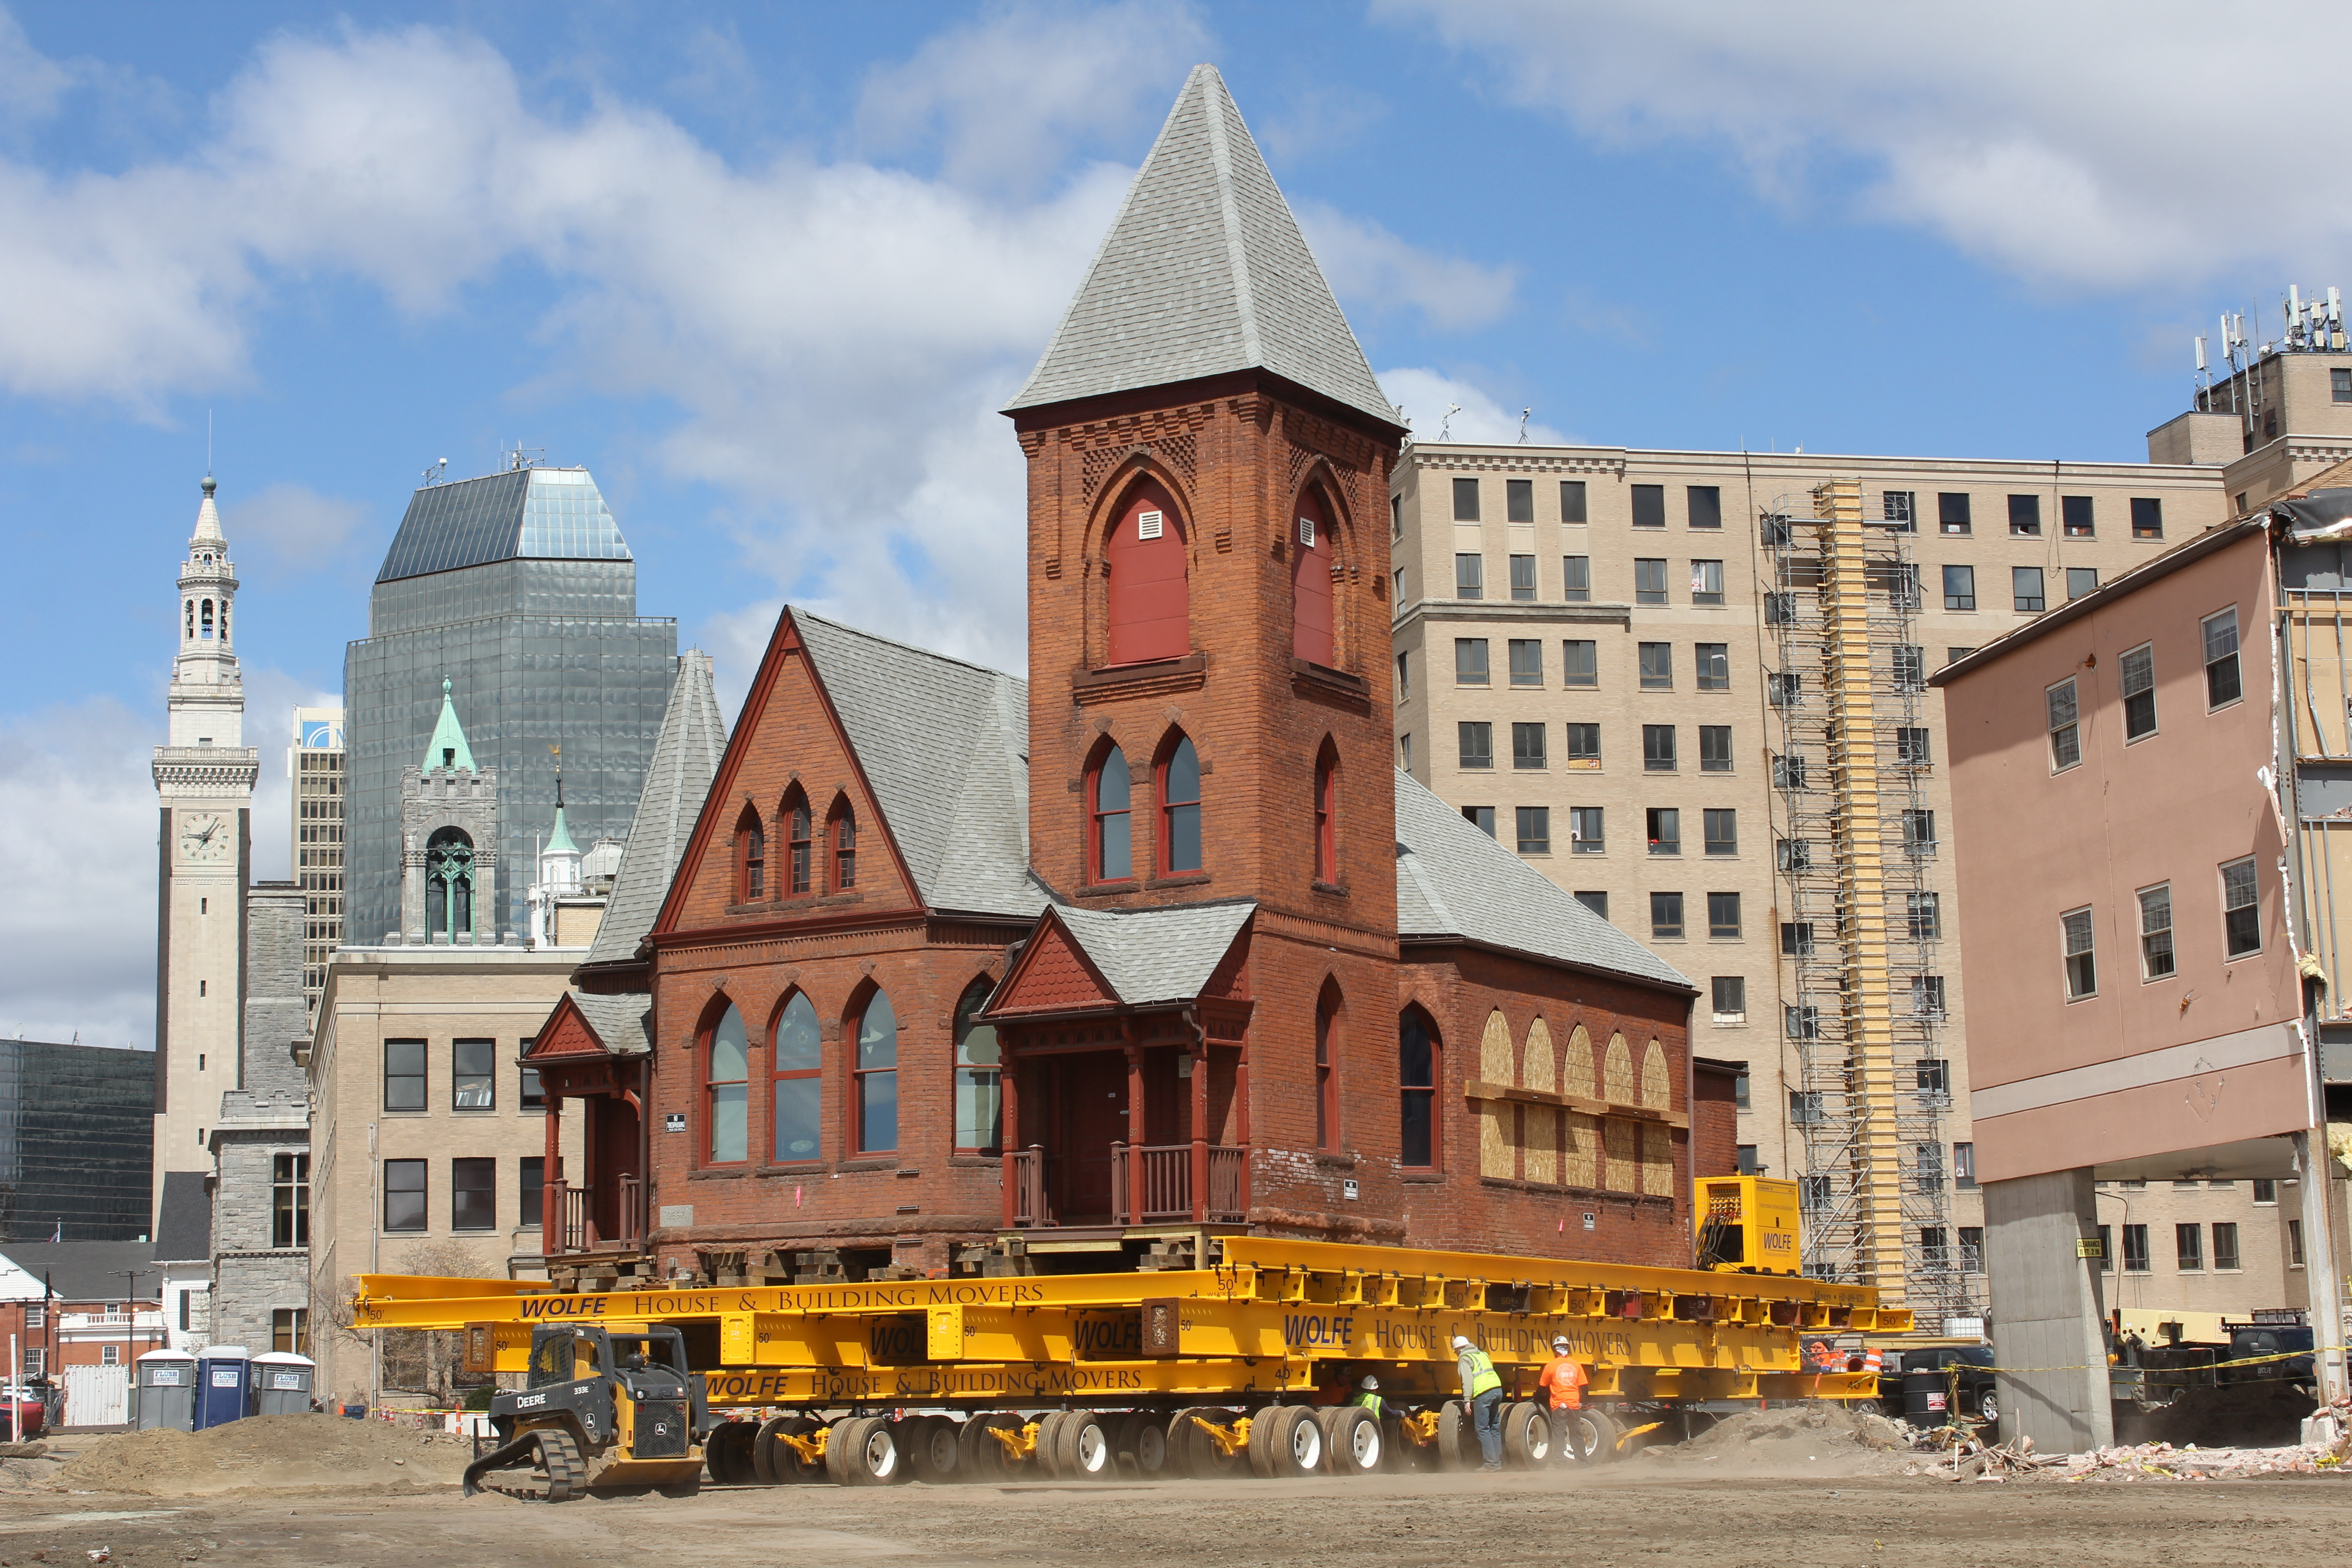 This church was moved in Springfield, MA to make way for new development.